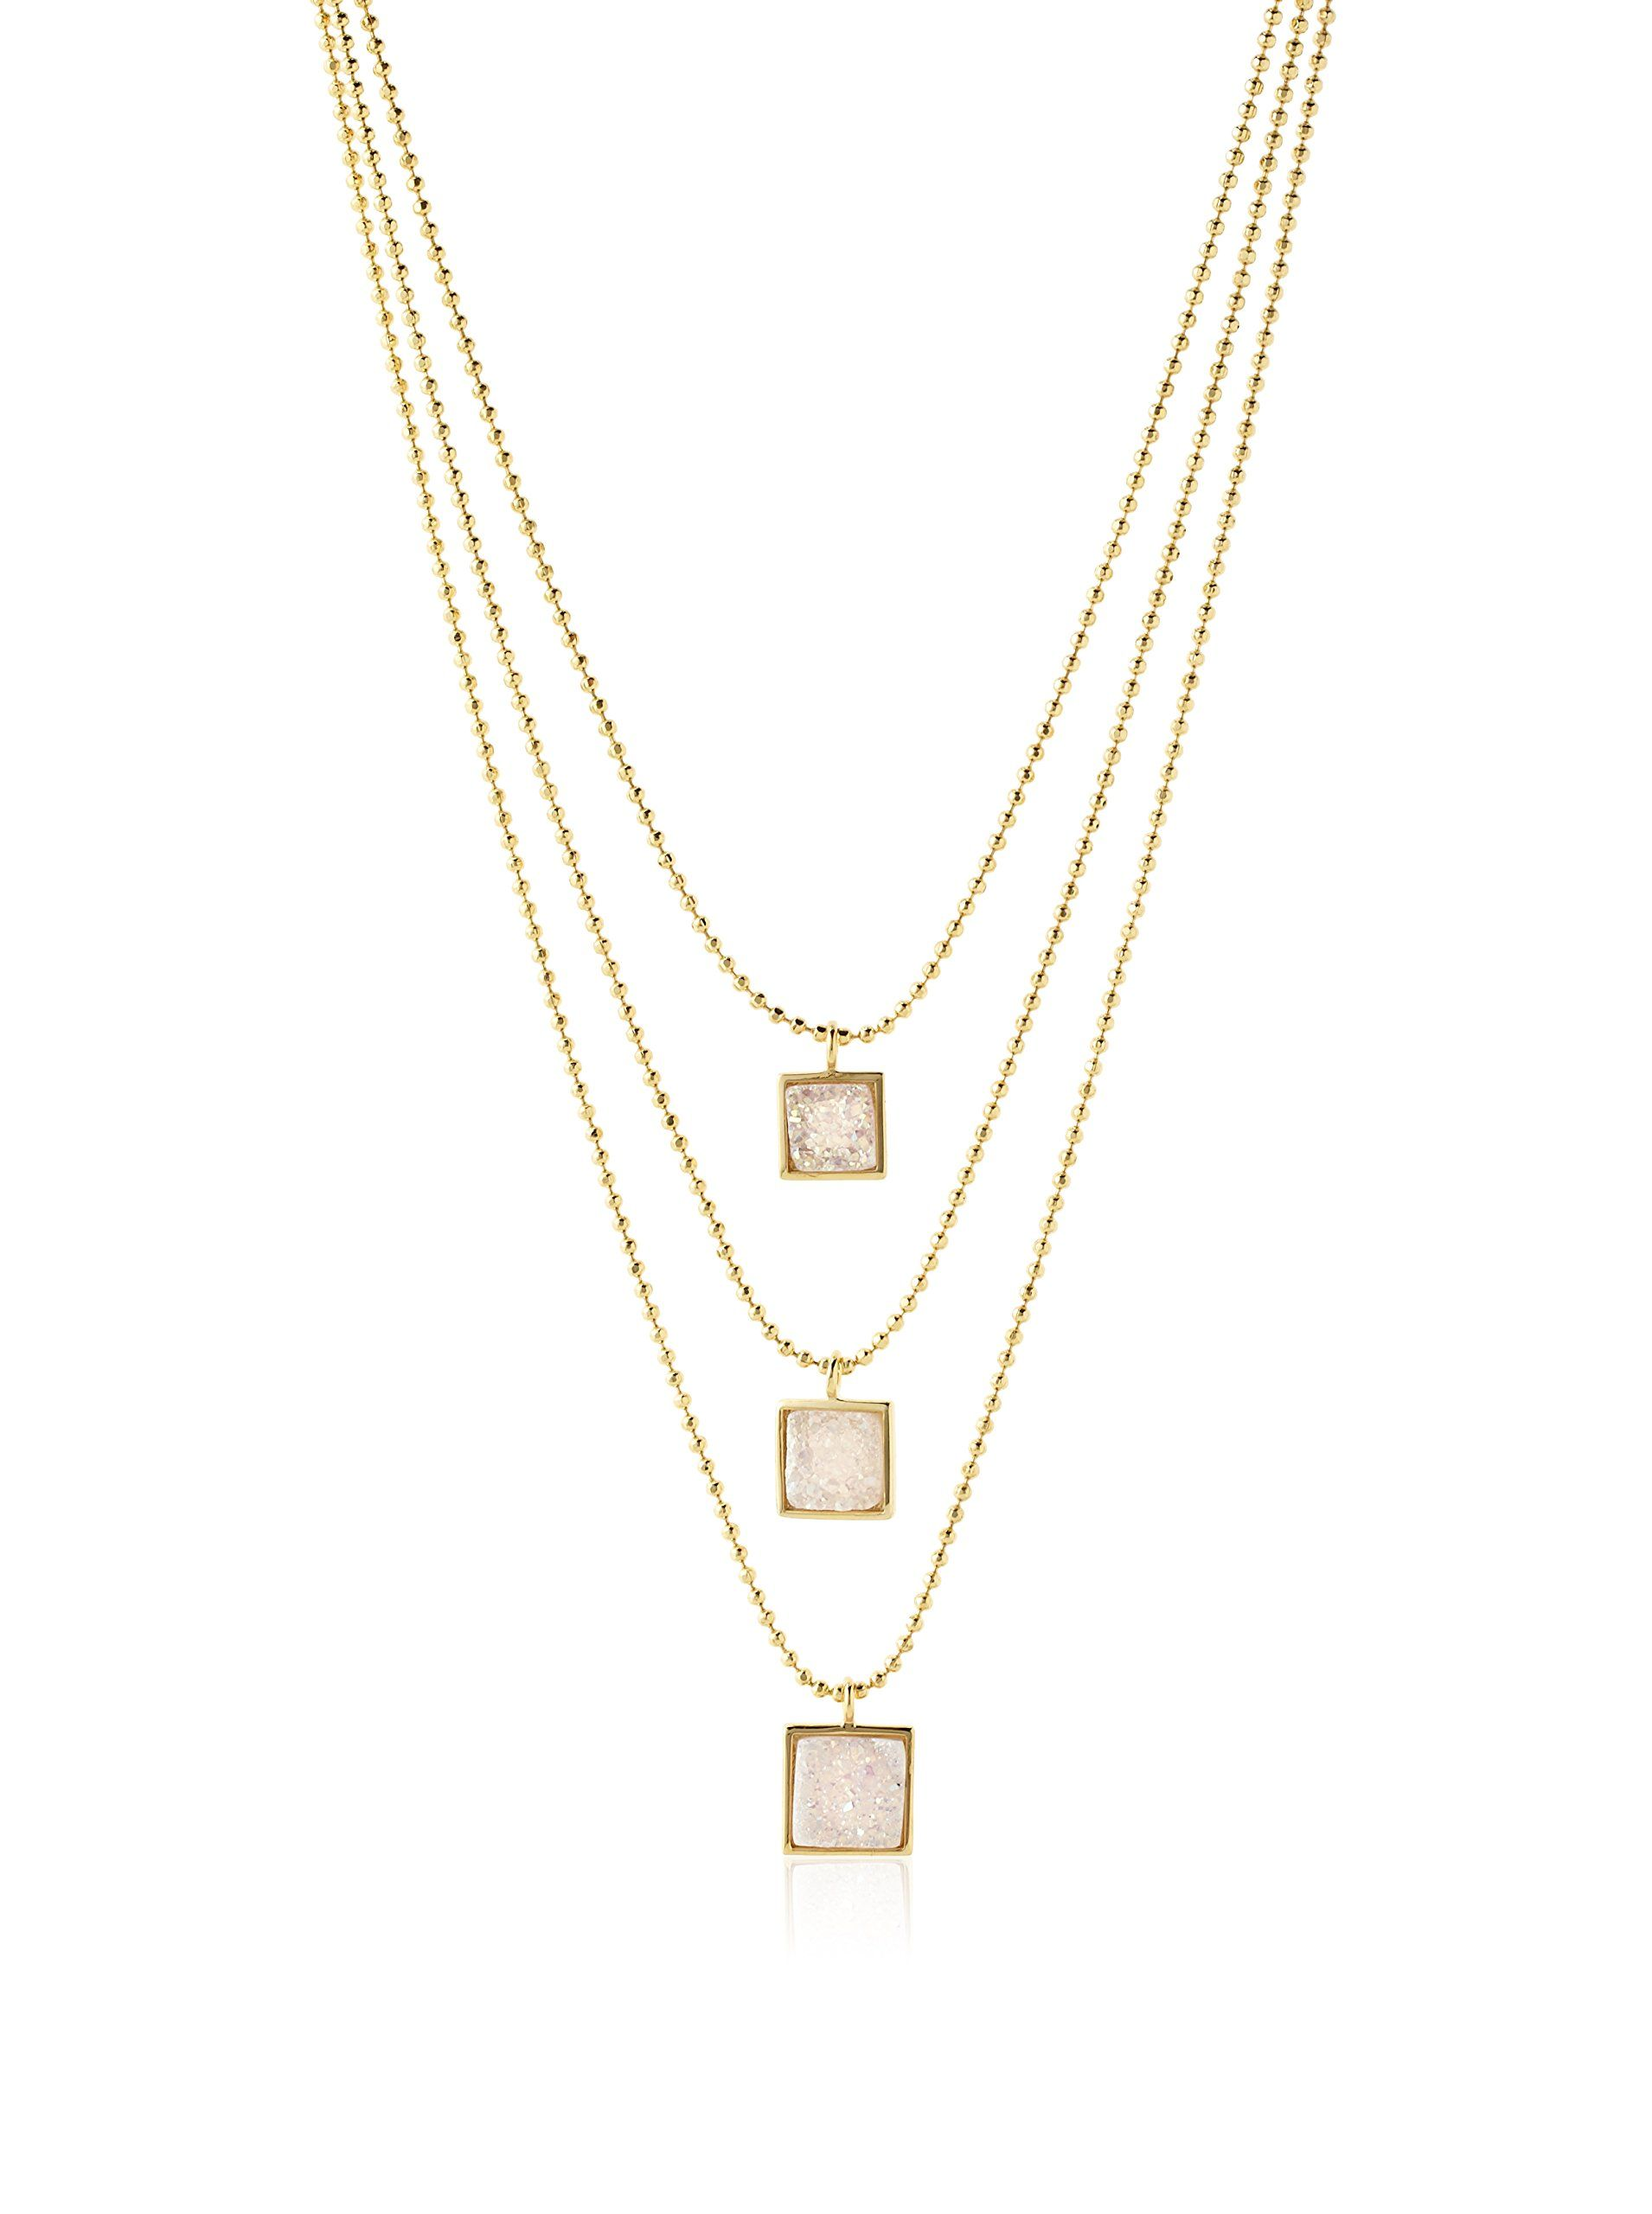 pendant products tier side brass swarovski view necklace from dangling plated with chain crystal crystals rhodium